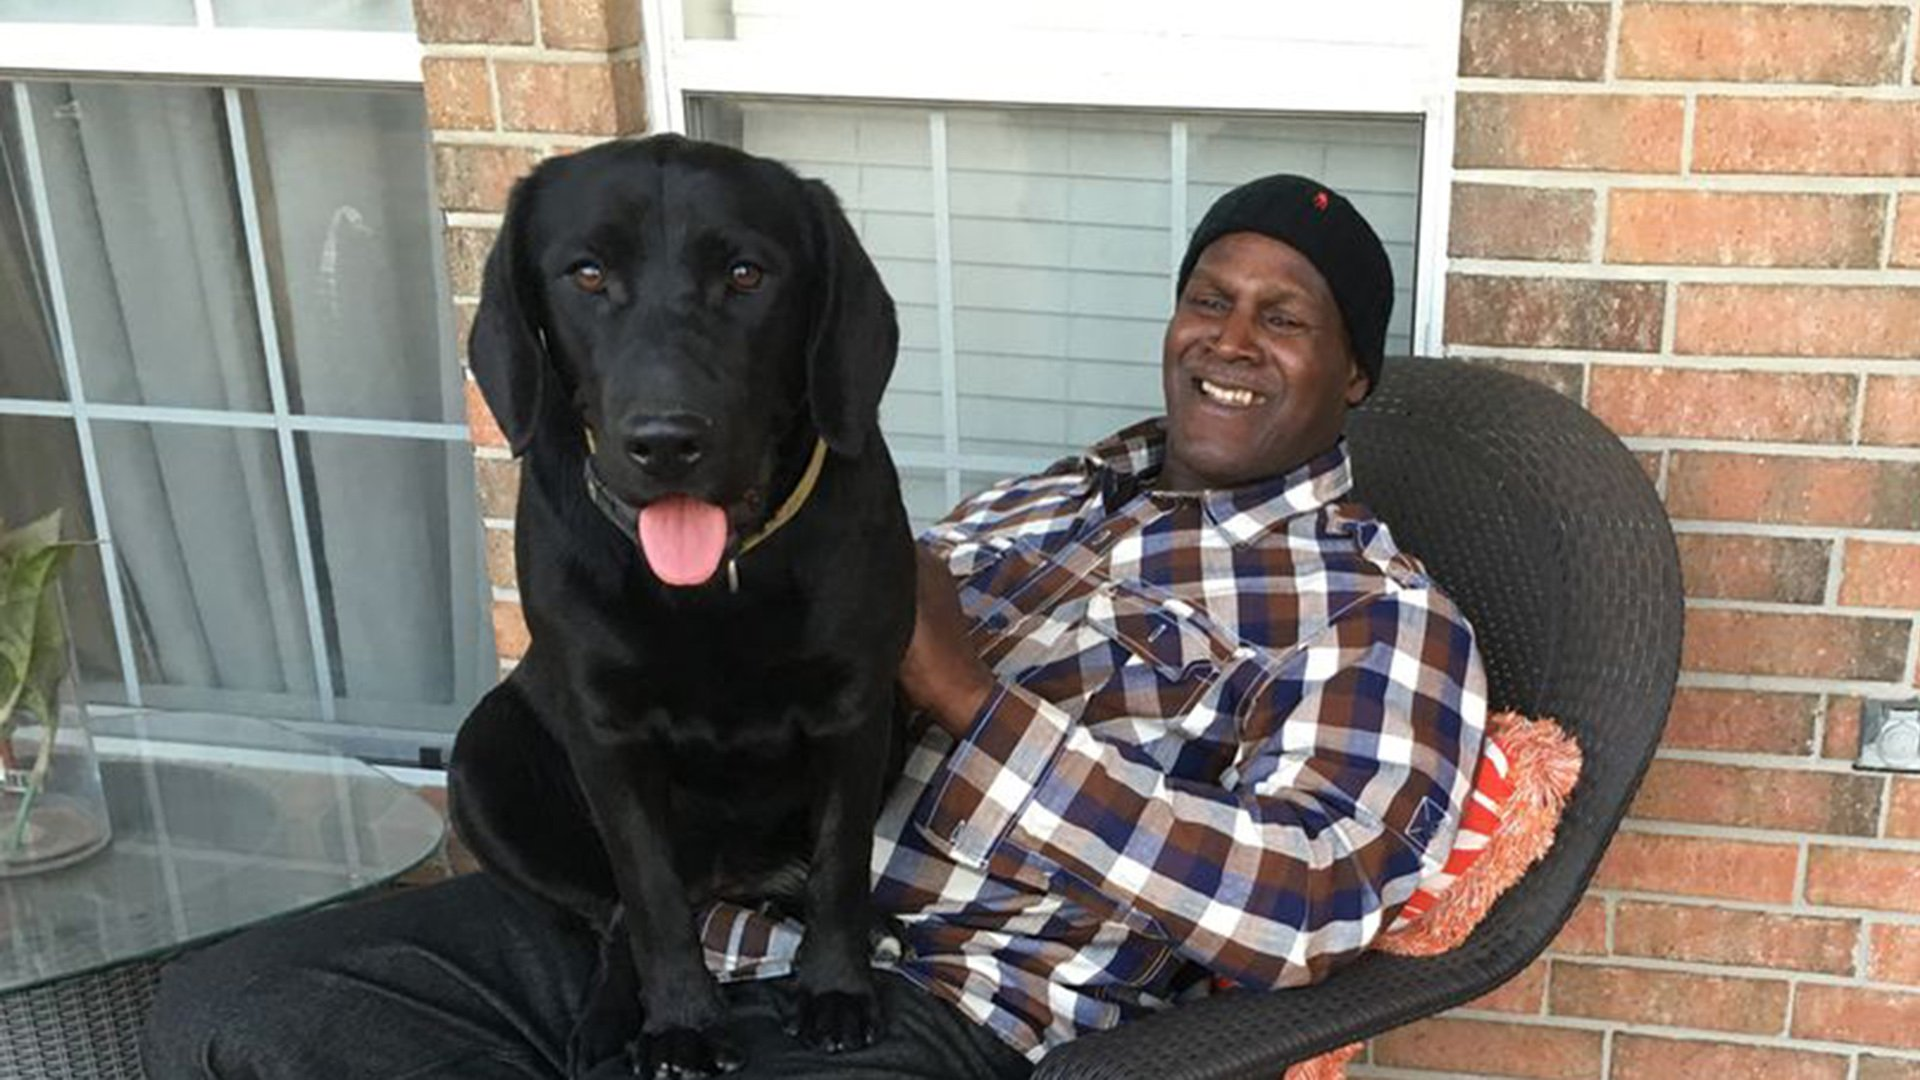 1 84 - Exculpated After 38 Years, Innocent Man Leaves Lock-Up With The Dog He Raised